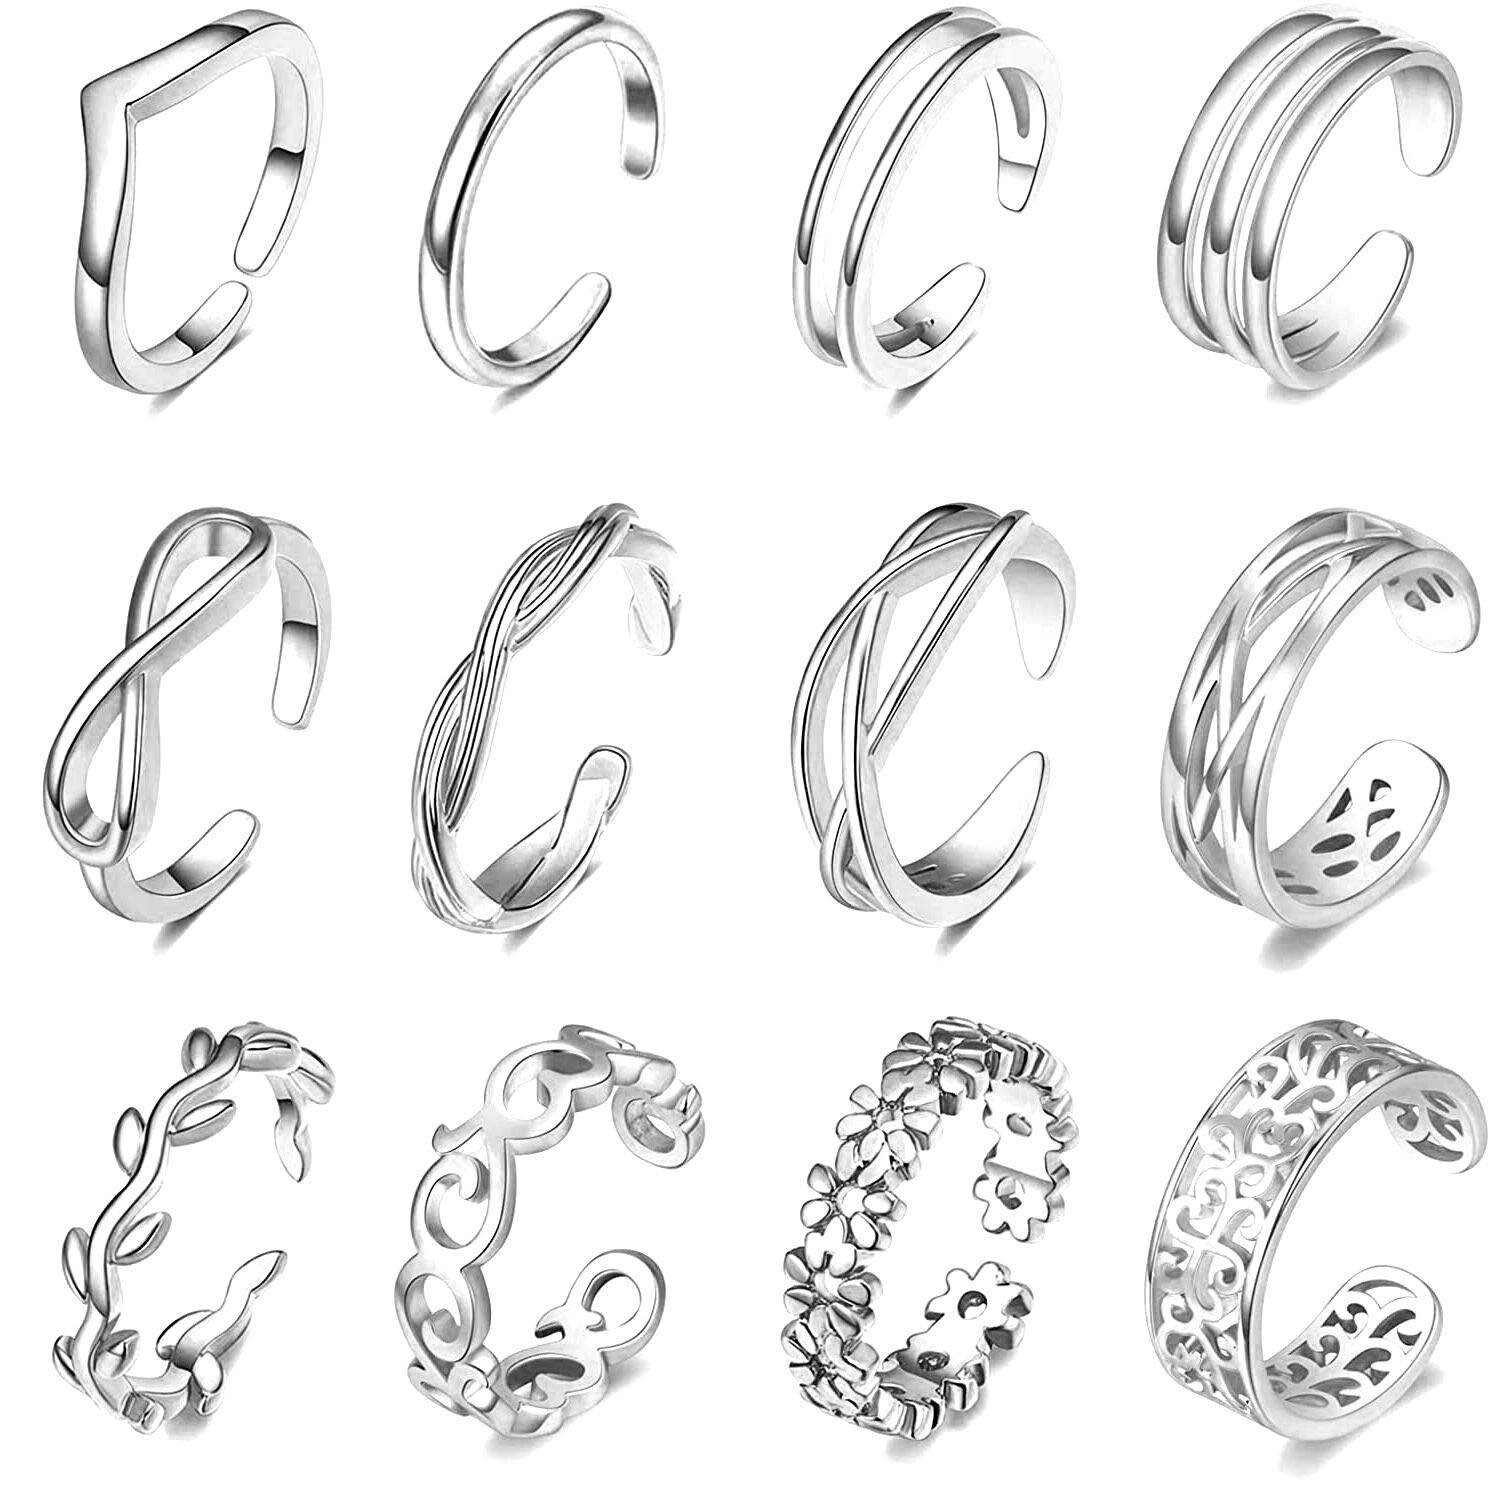 FUNEIA 12Pcs Adjustable Toe Ring for Women Flower Knot Tail Band Open Toe Rings Set Hawaiian Foot Jewelry